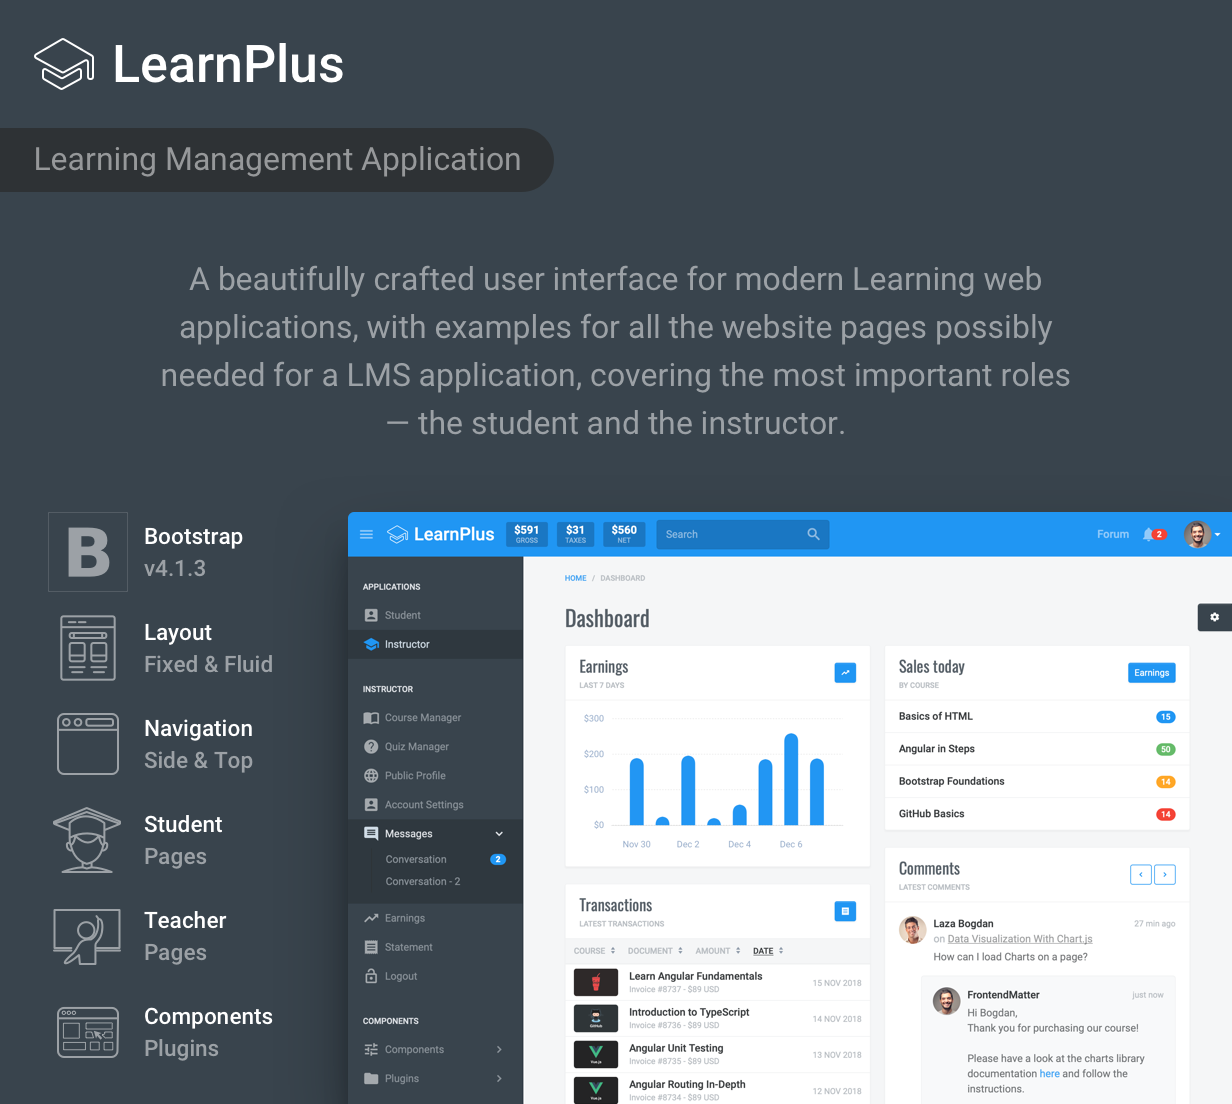 LearnPlus Bootstrap - Learning Application Management